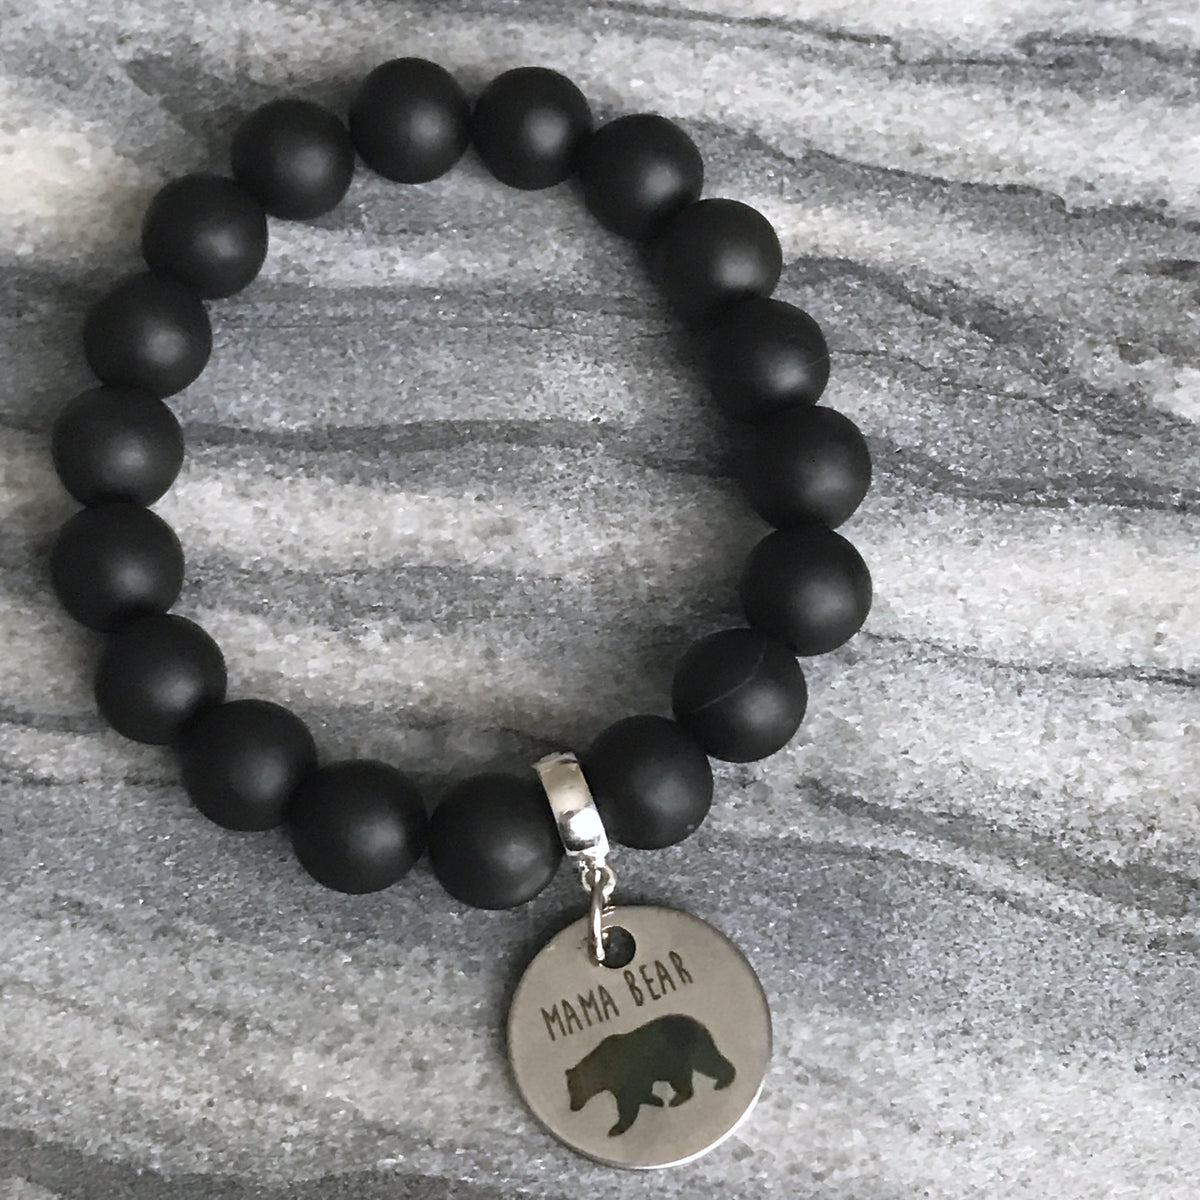 Stone Bracelet - ' MAMA BEAR ' Matt Black Onyx - Chunky 10mm beads